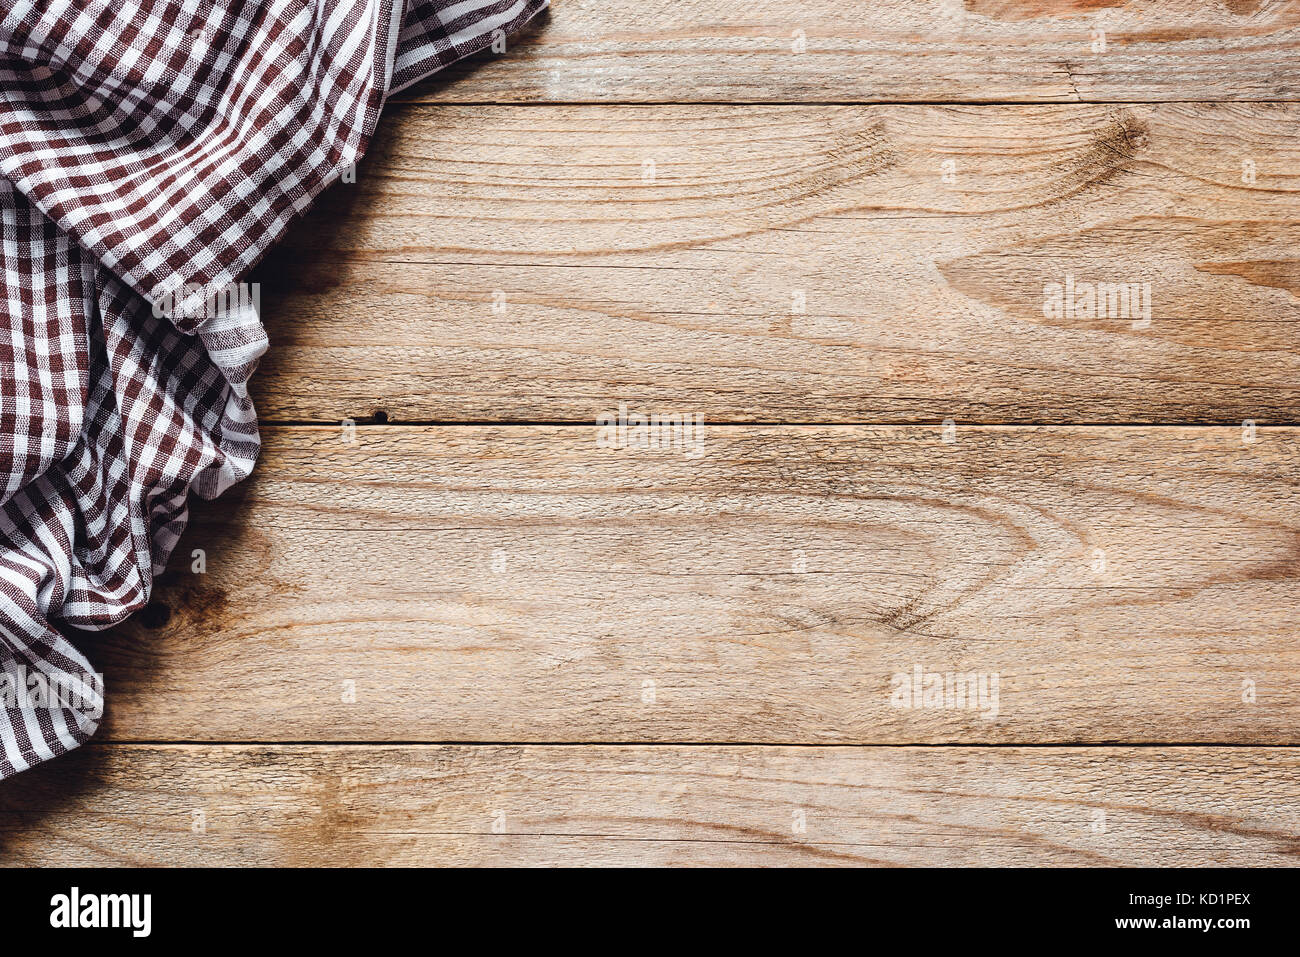 wooden table background with kitchen textile or kitchen napkin stock